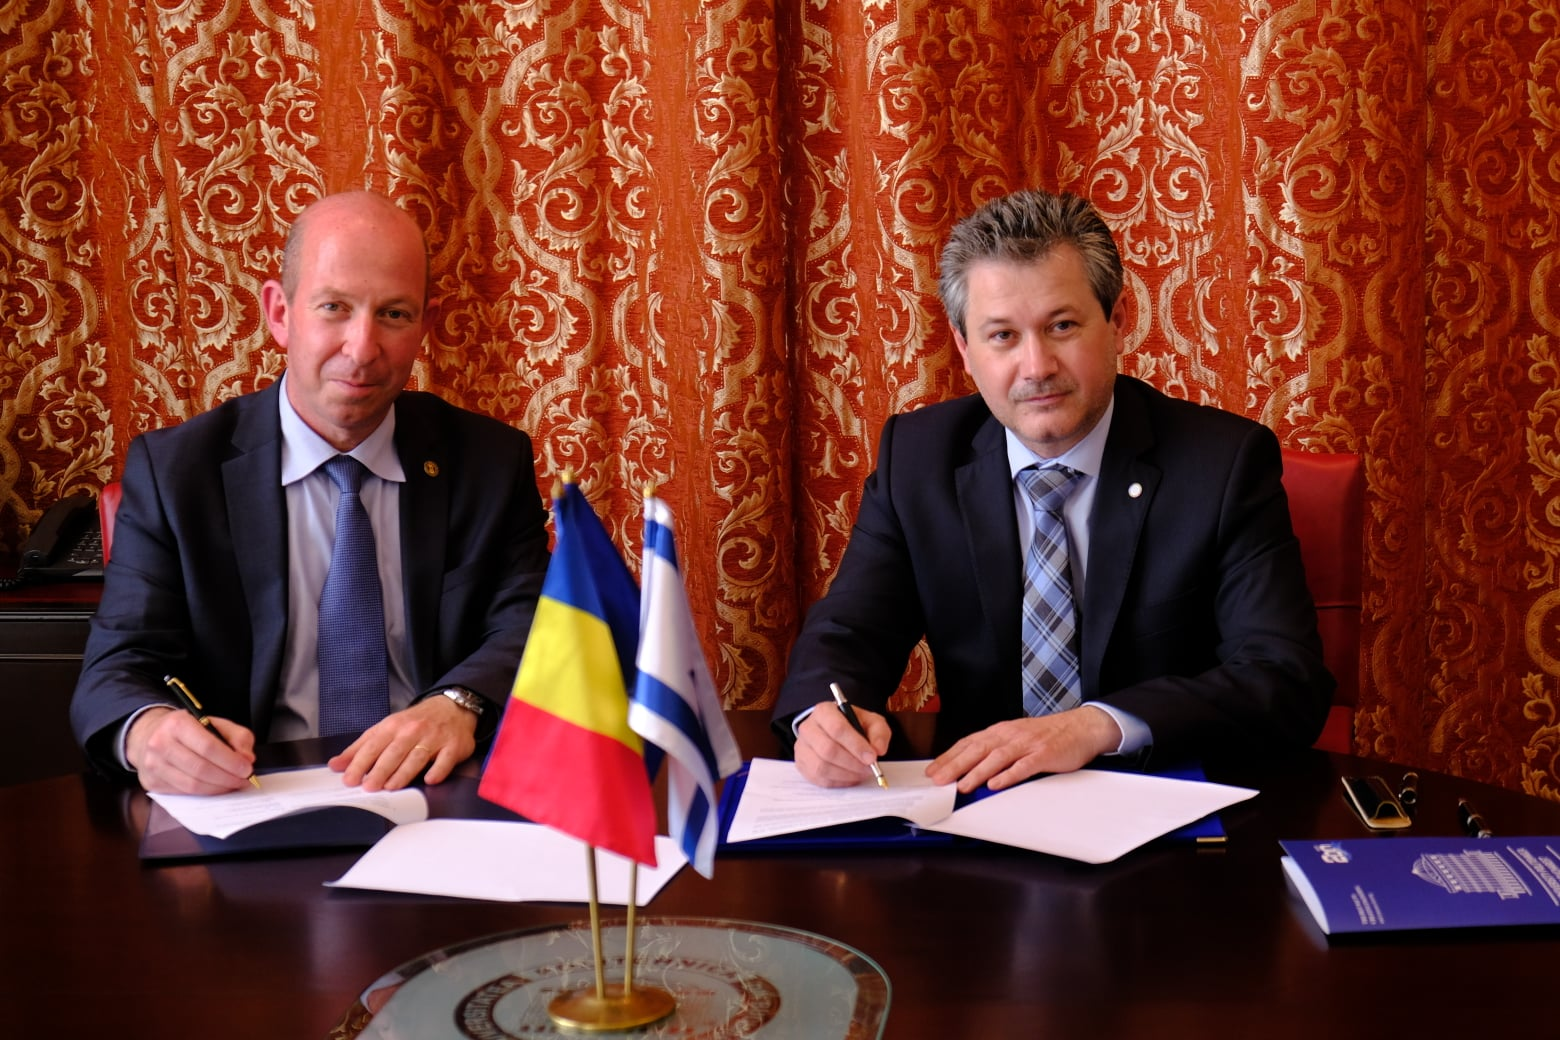 University POLITEHNICA of Bucharest and Technion - Israel Institute of Technology Sign MOU to Support Scientific & Educational Cooperation